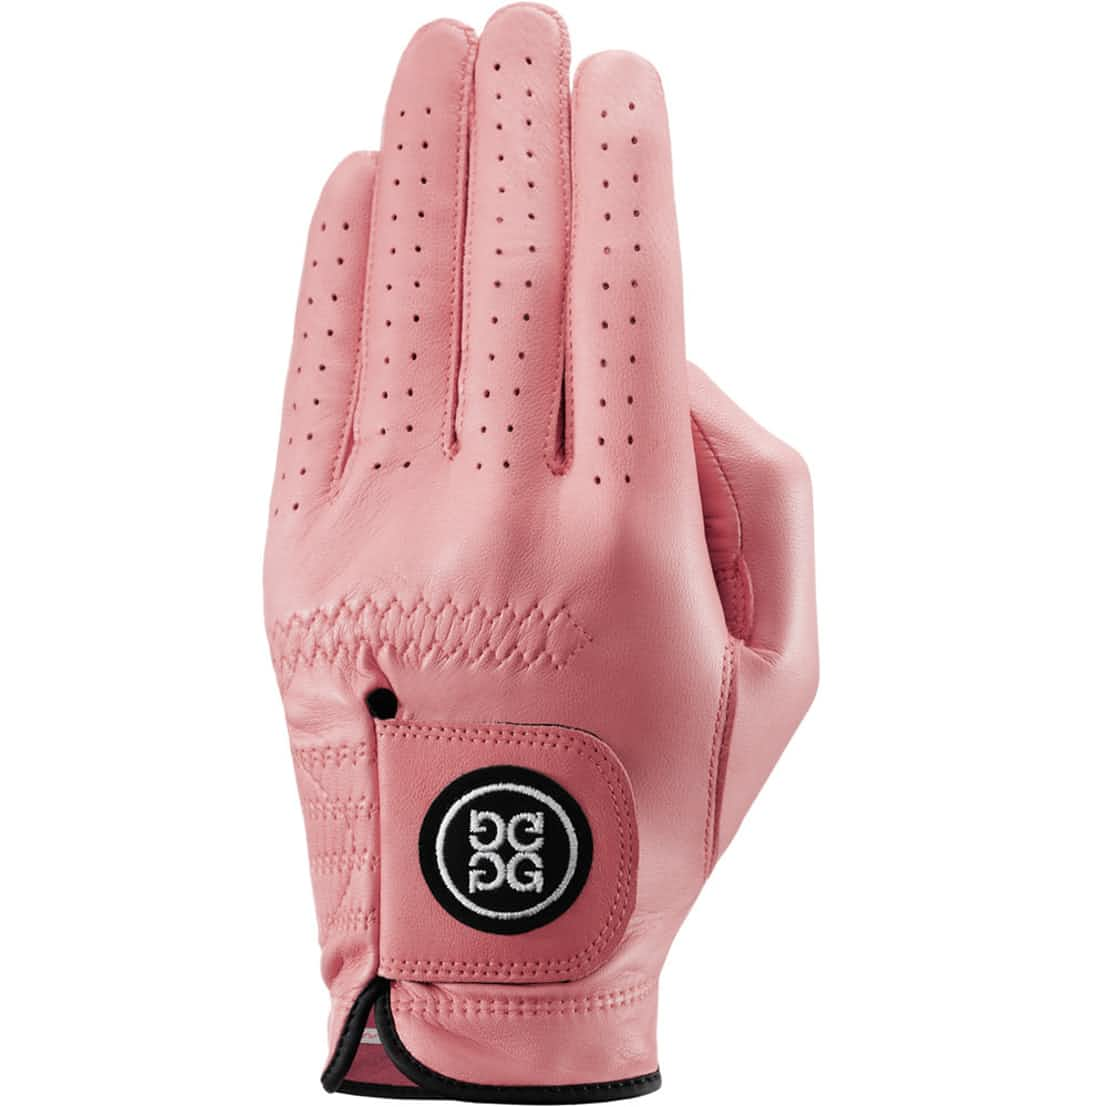 Womens Left Glove Blush - 2020